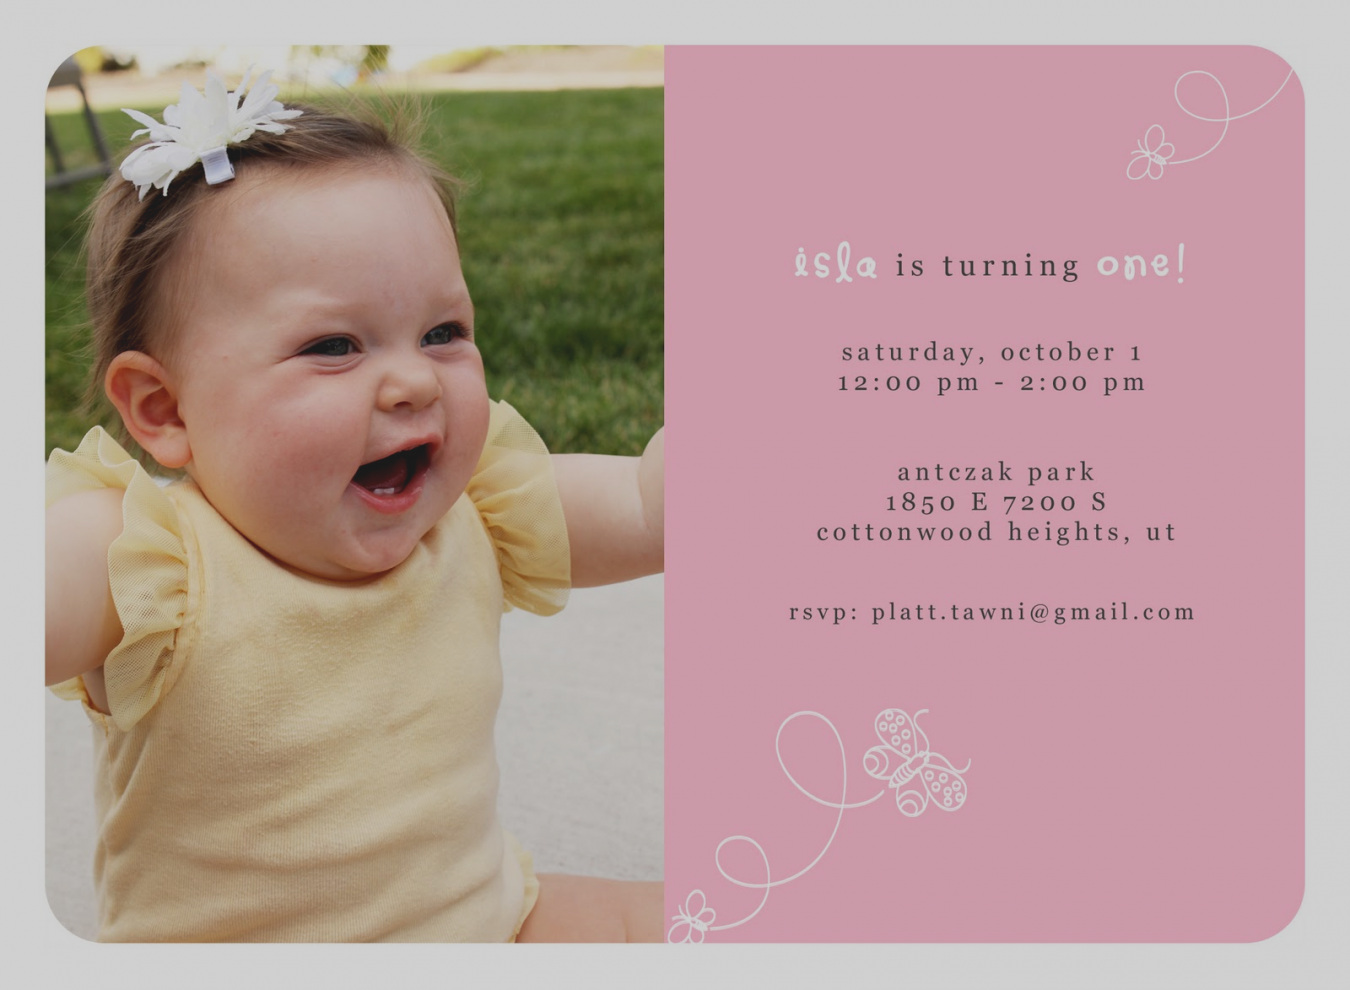 baby first birthday invitation templates free ; Wonderful-Baby-First-Birthday-Invitation-Templates-Free-Invitations-Fabulous-St-Spectacular-1st-Birthday-Invitation-Templates